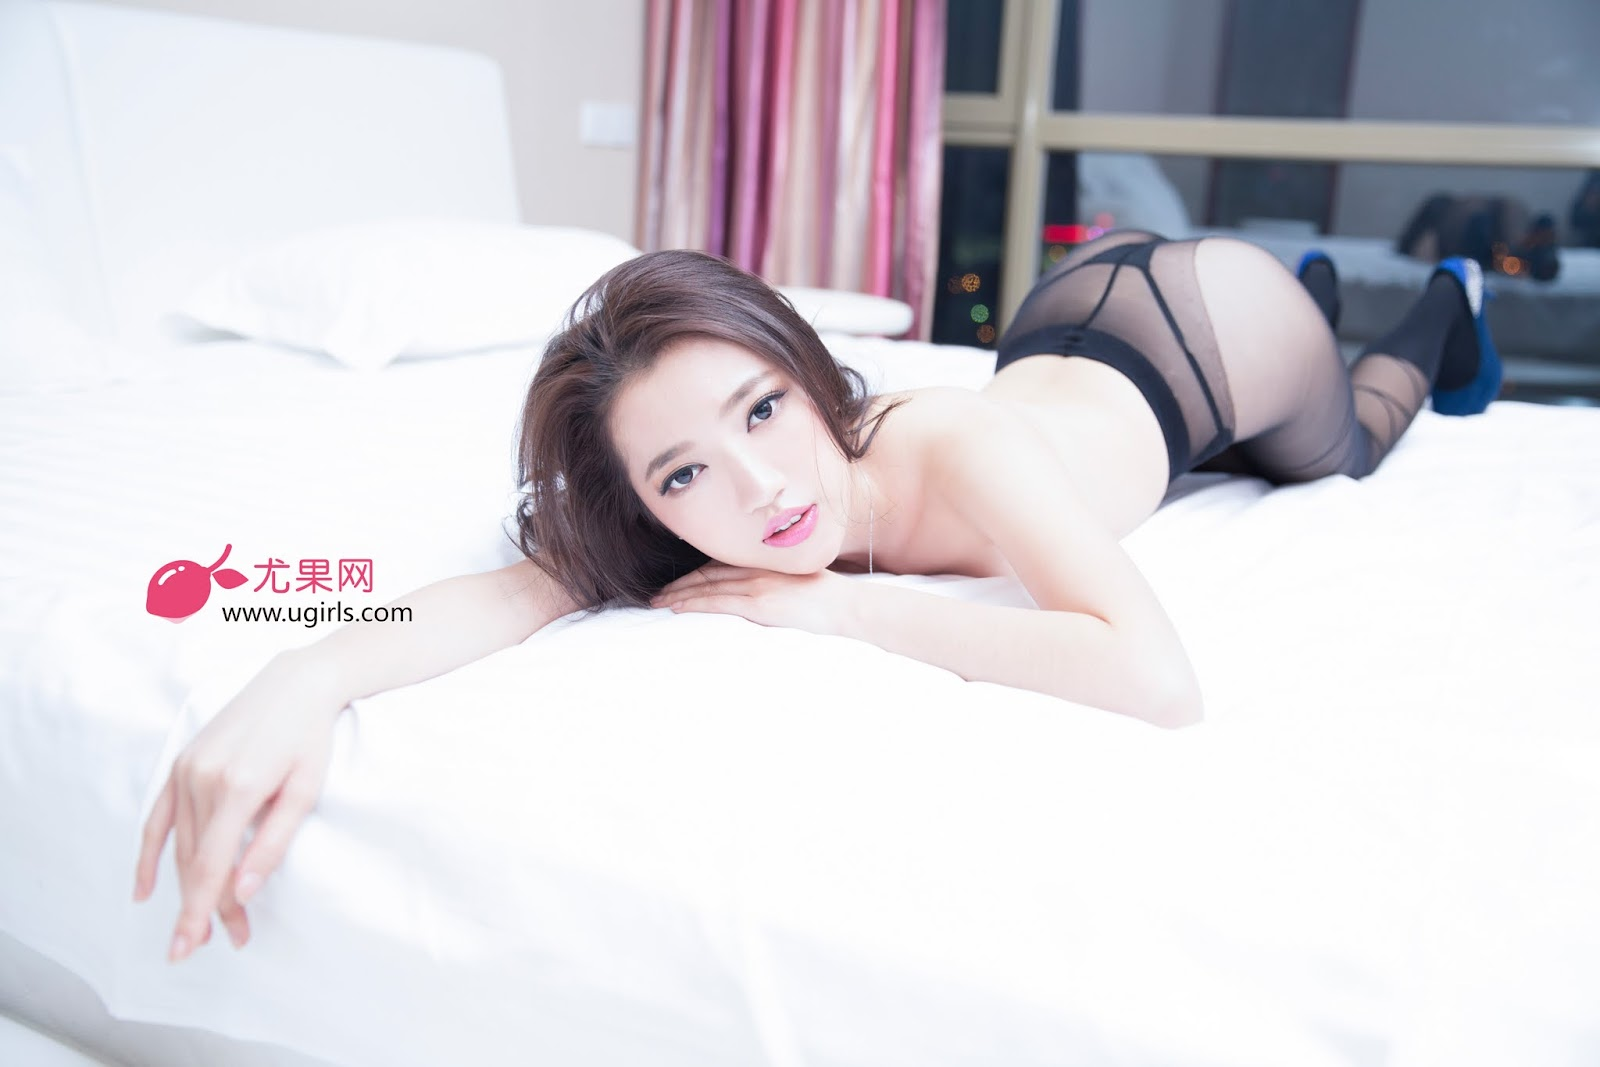 A14A5532 - Hot Model UGIRLS NO.8